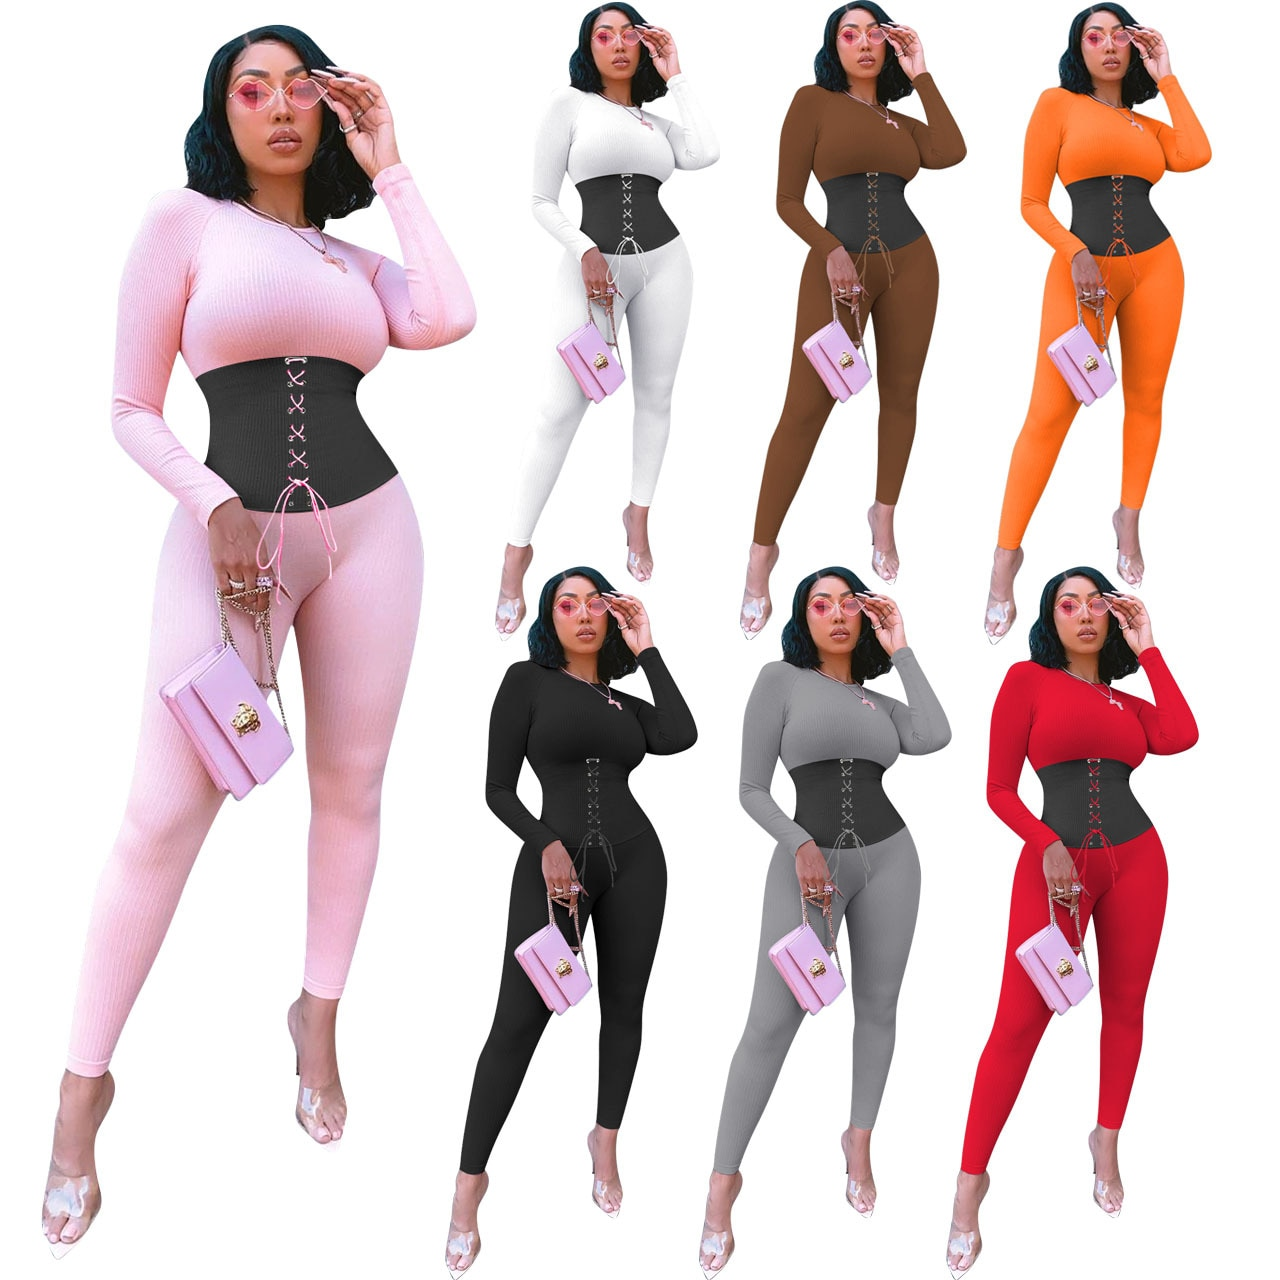 Ribbing Bandage Solid Color Patchwork Sports Fitness Women Suits Long Sleeve Round Neck Autumn Casual Simple Two Piece Set